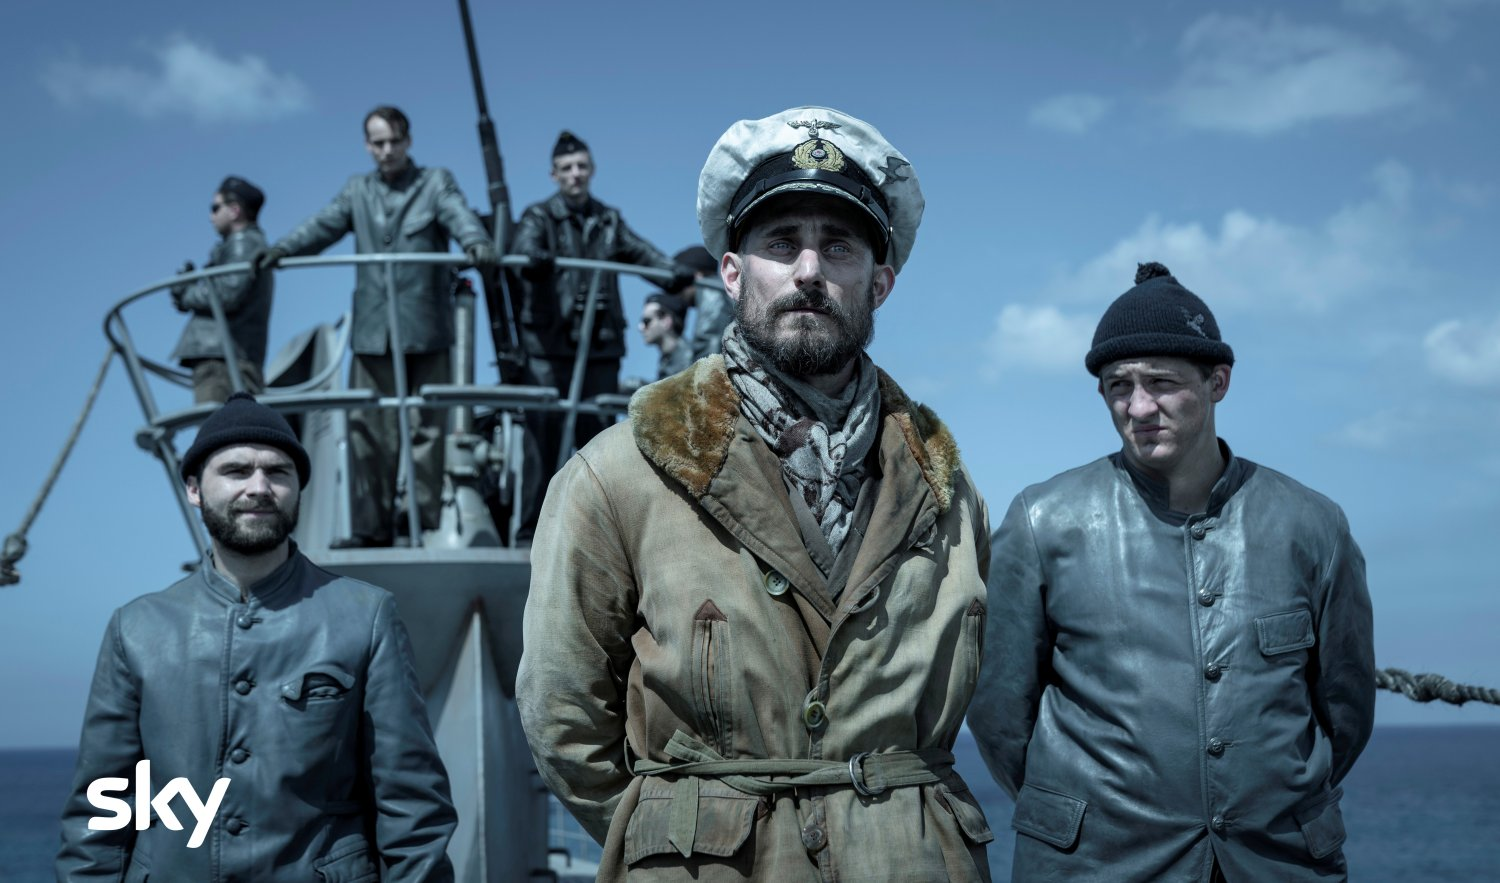 Das Boot, la seconda stagione da stasera su Sky Atlantic e NOW TV